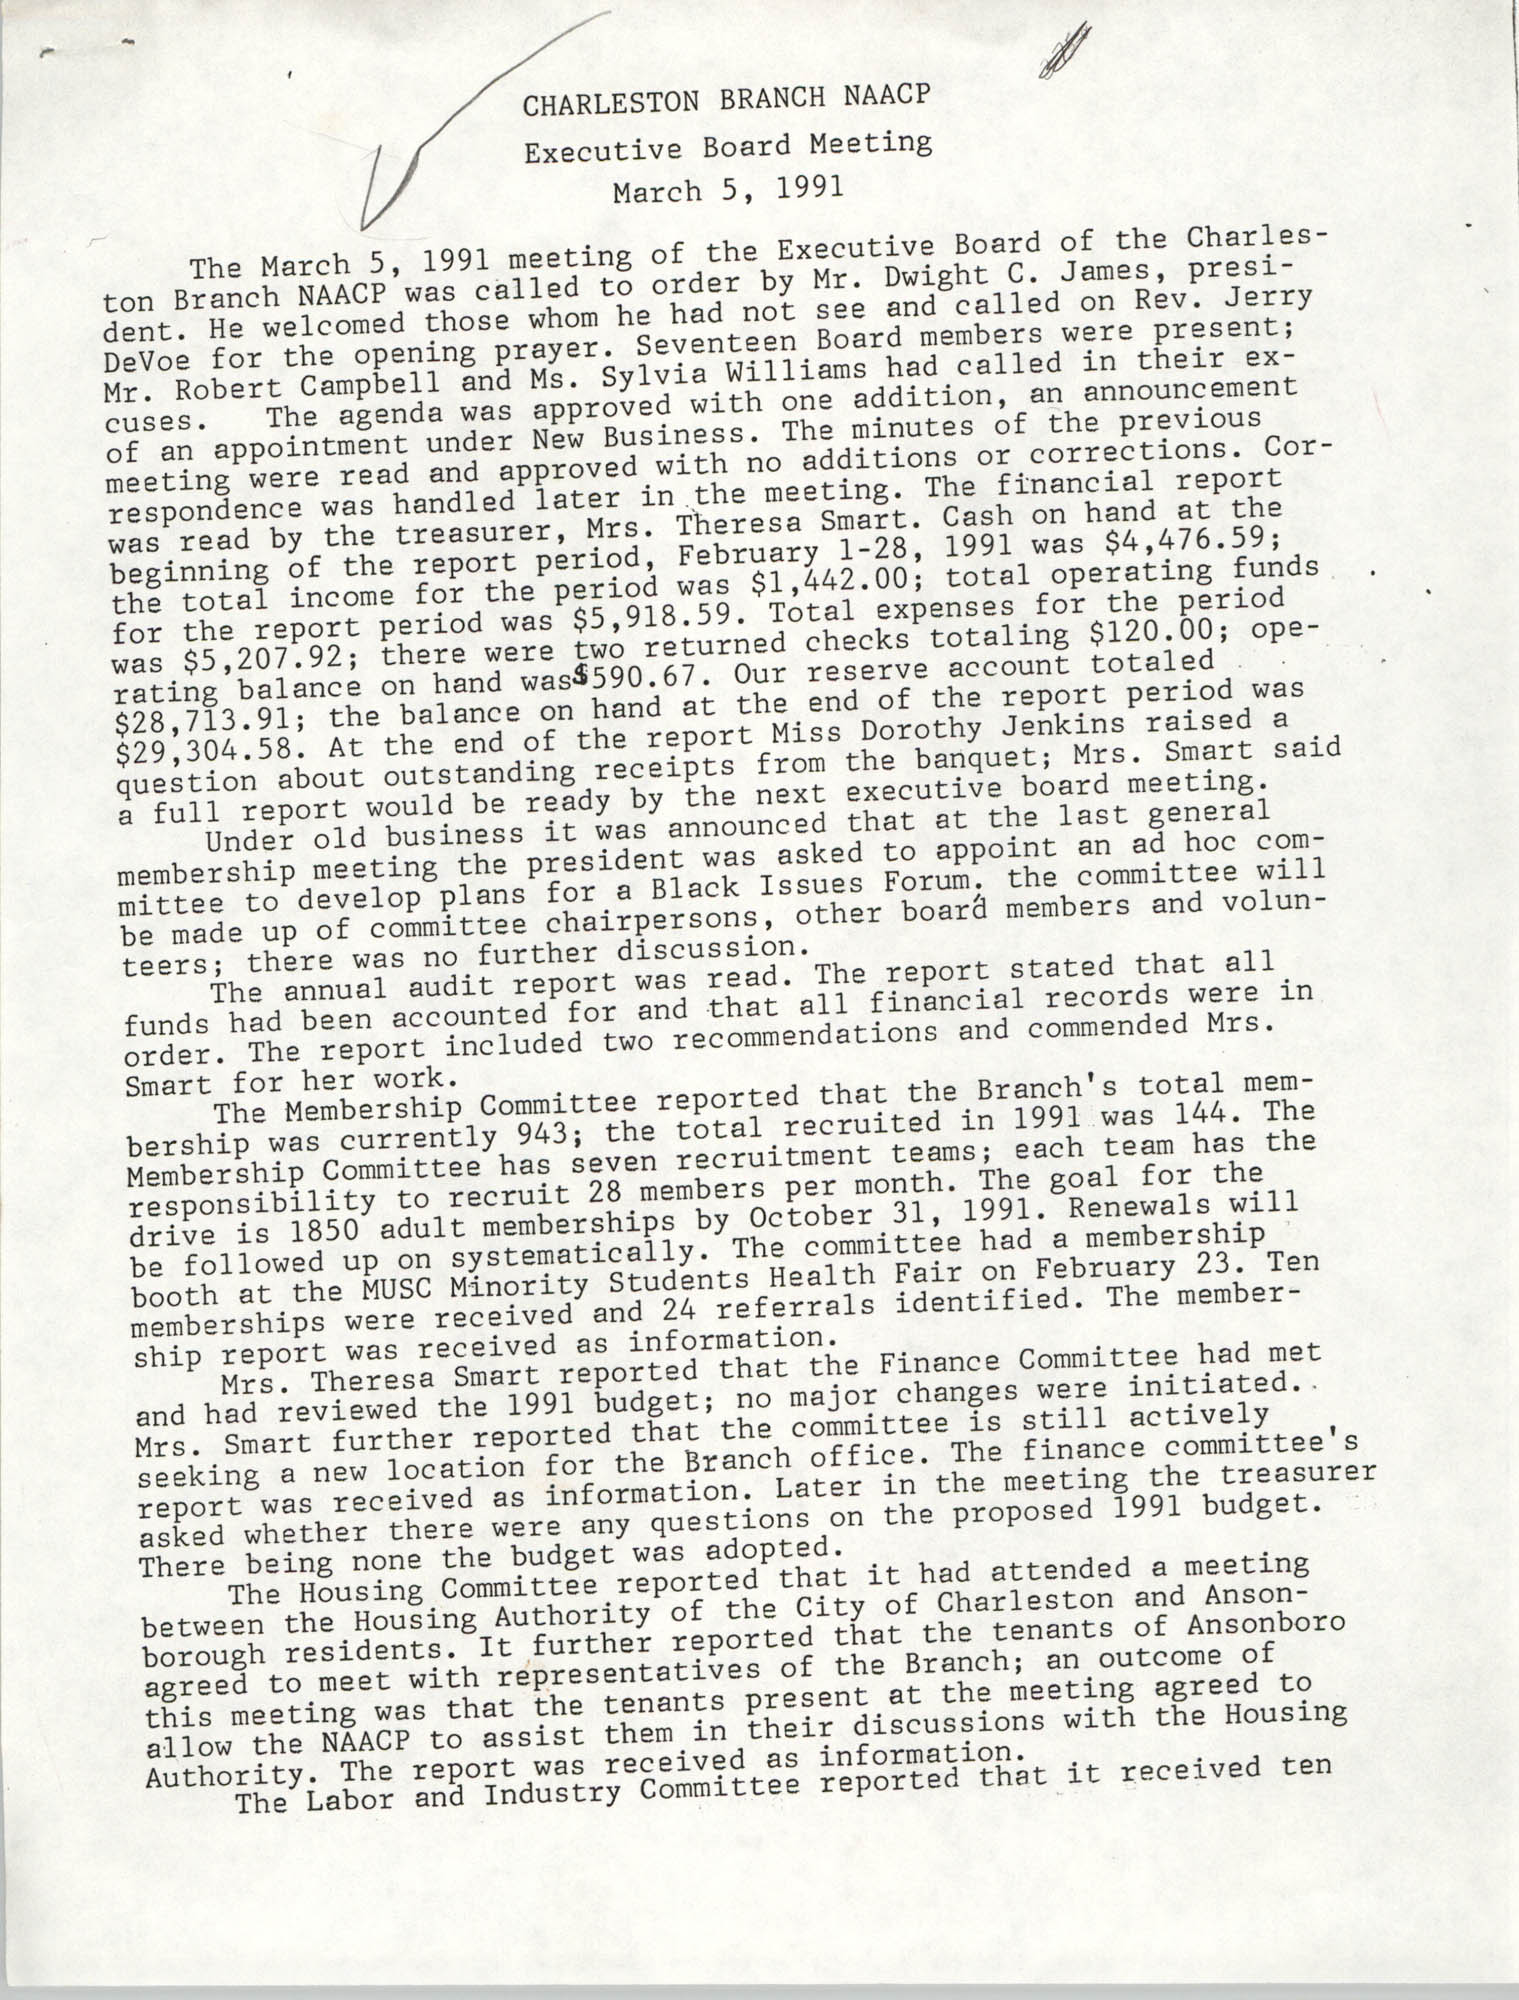 Minutes, Version 1, Charleston Branch of the NAACP Executive Board Meeting, March 5, 1991